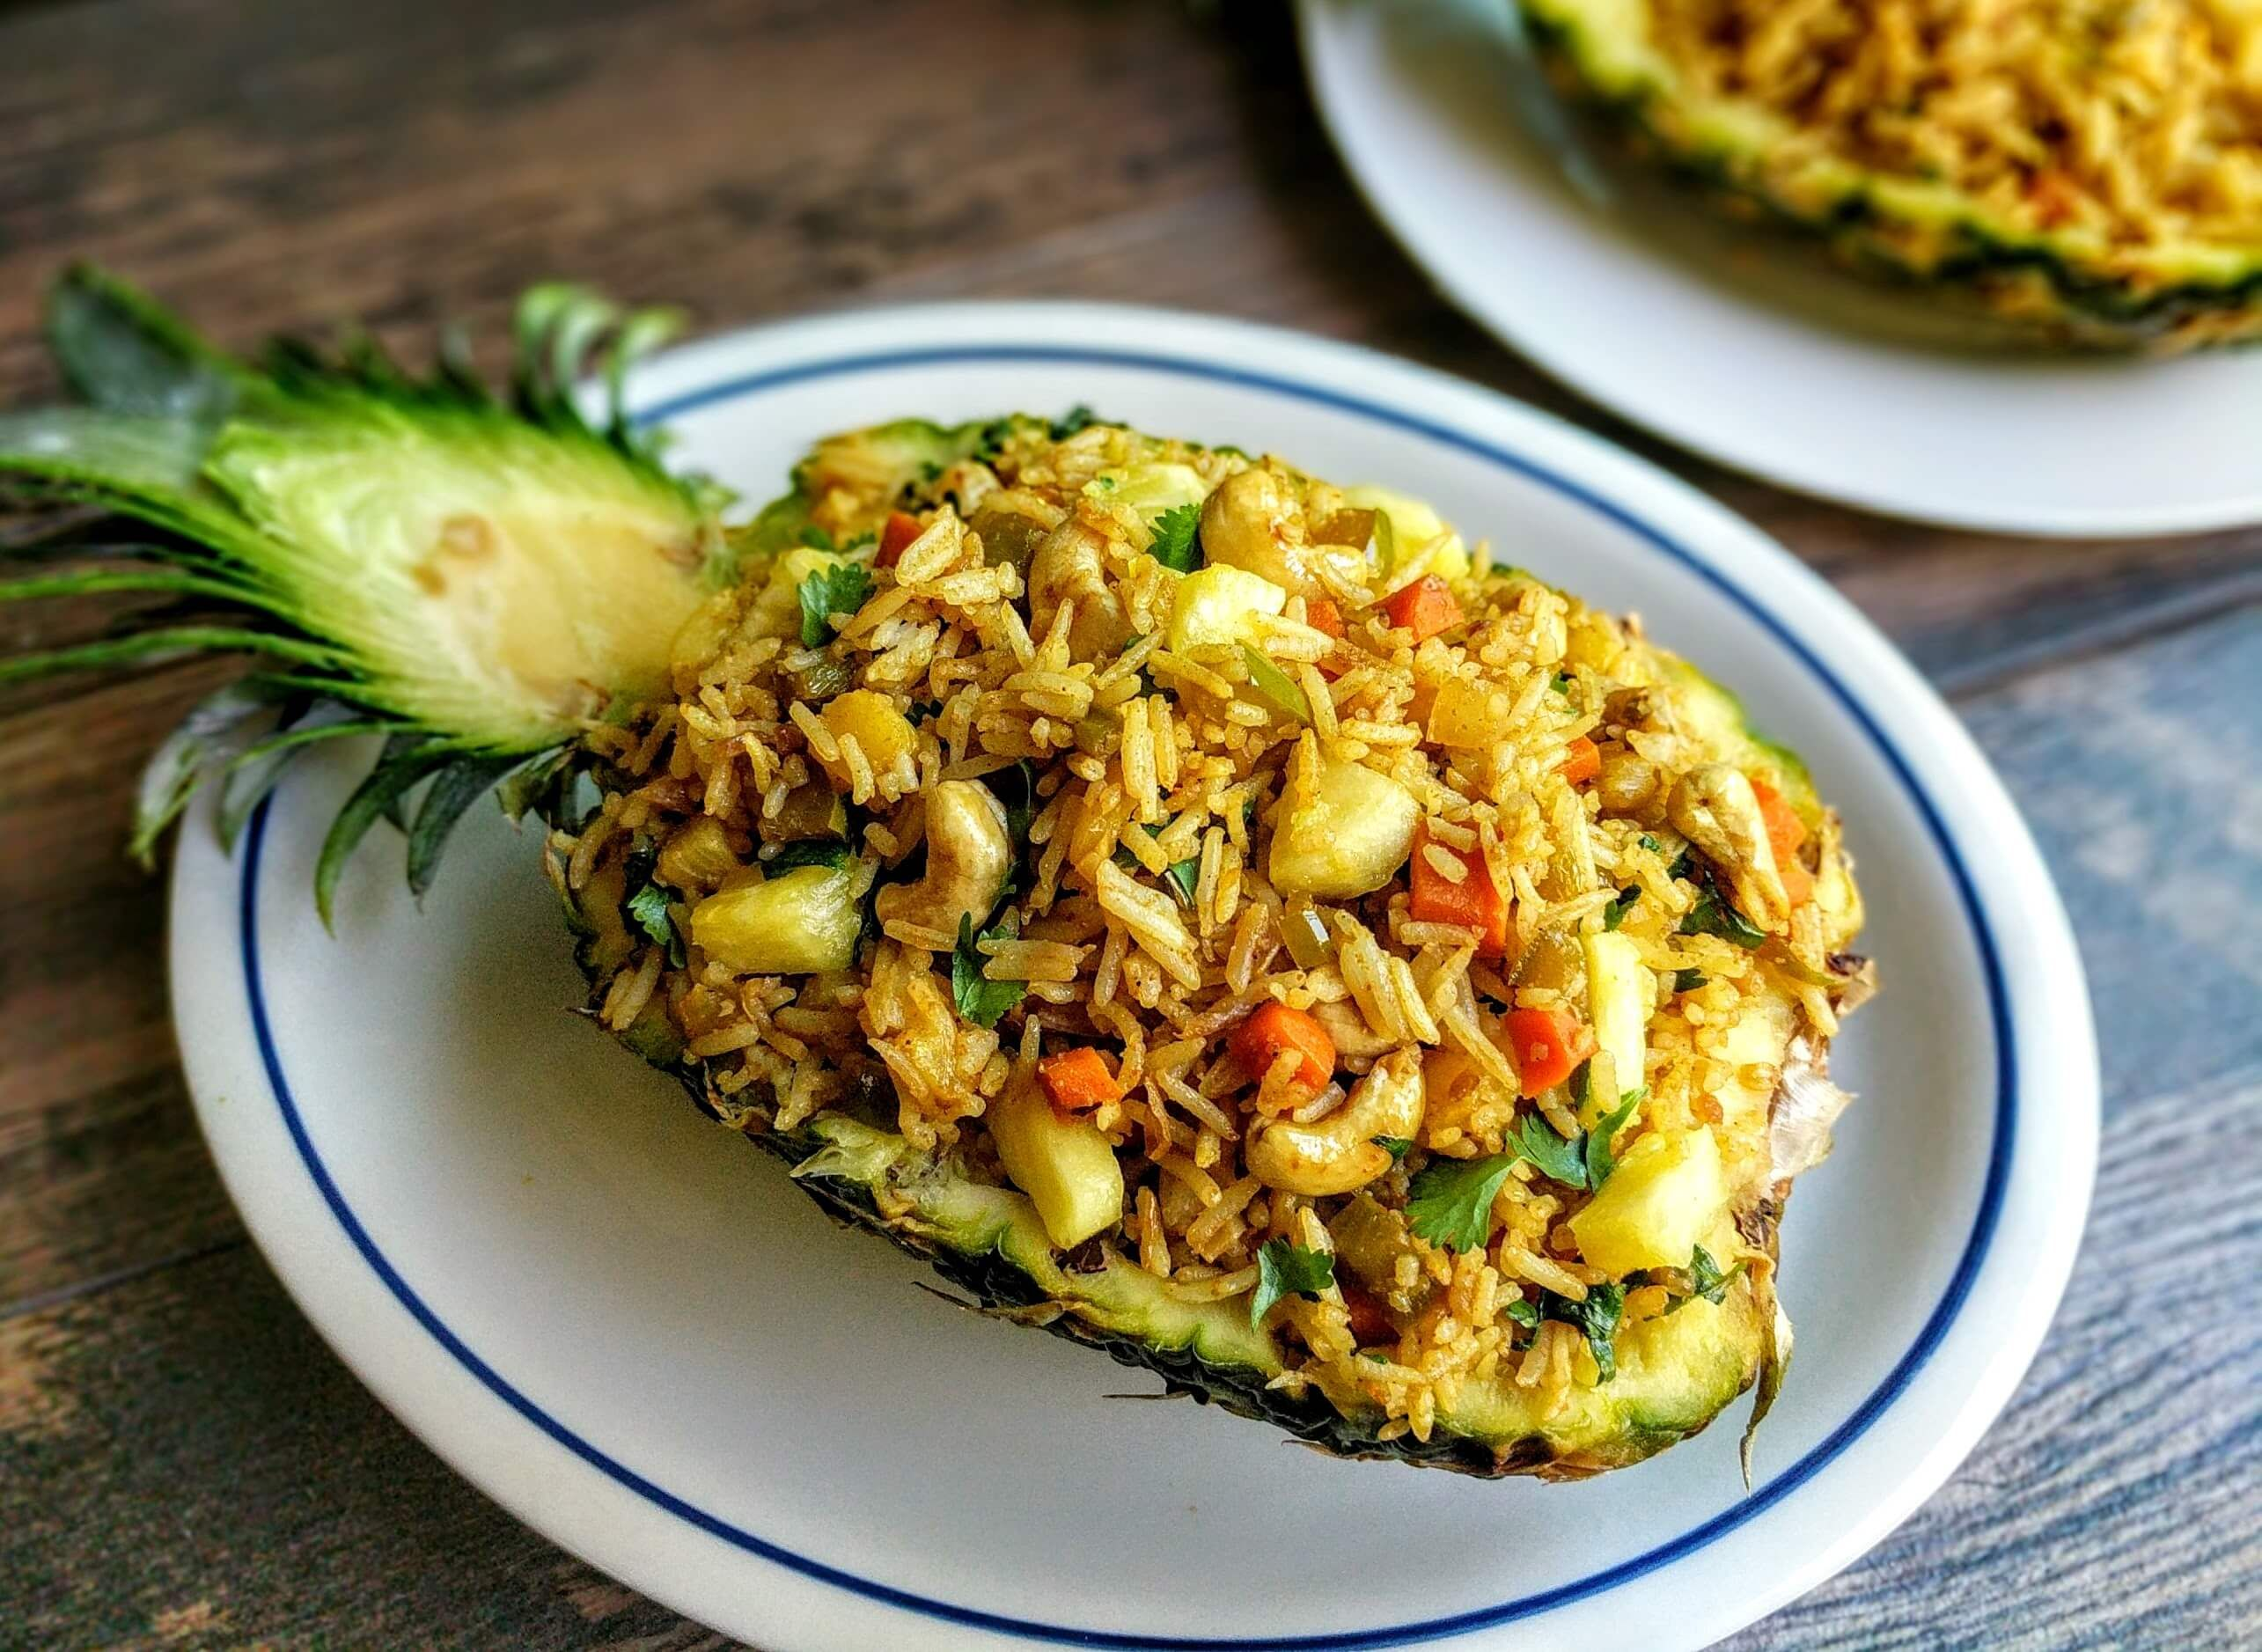 Pineapple fried rice recipe thai veg fried rice recipe indian pineapple fried rice recipe is inspired from thai cuisine this exotic sweet salty dish forumfinder Image collections